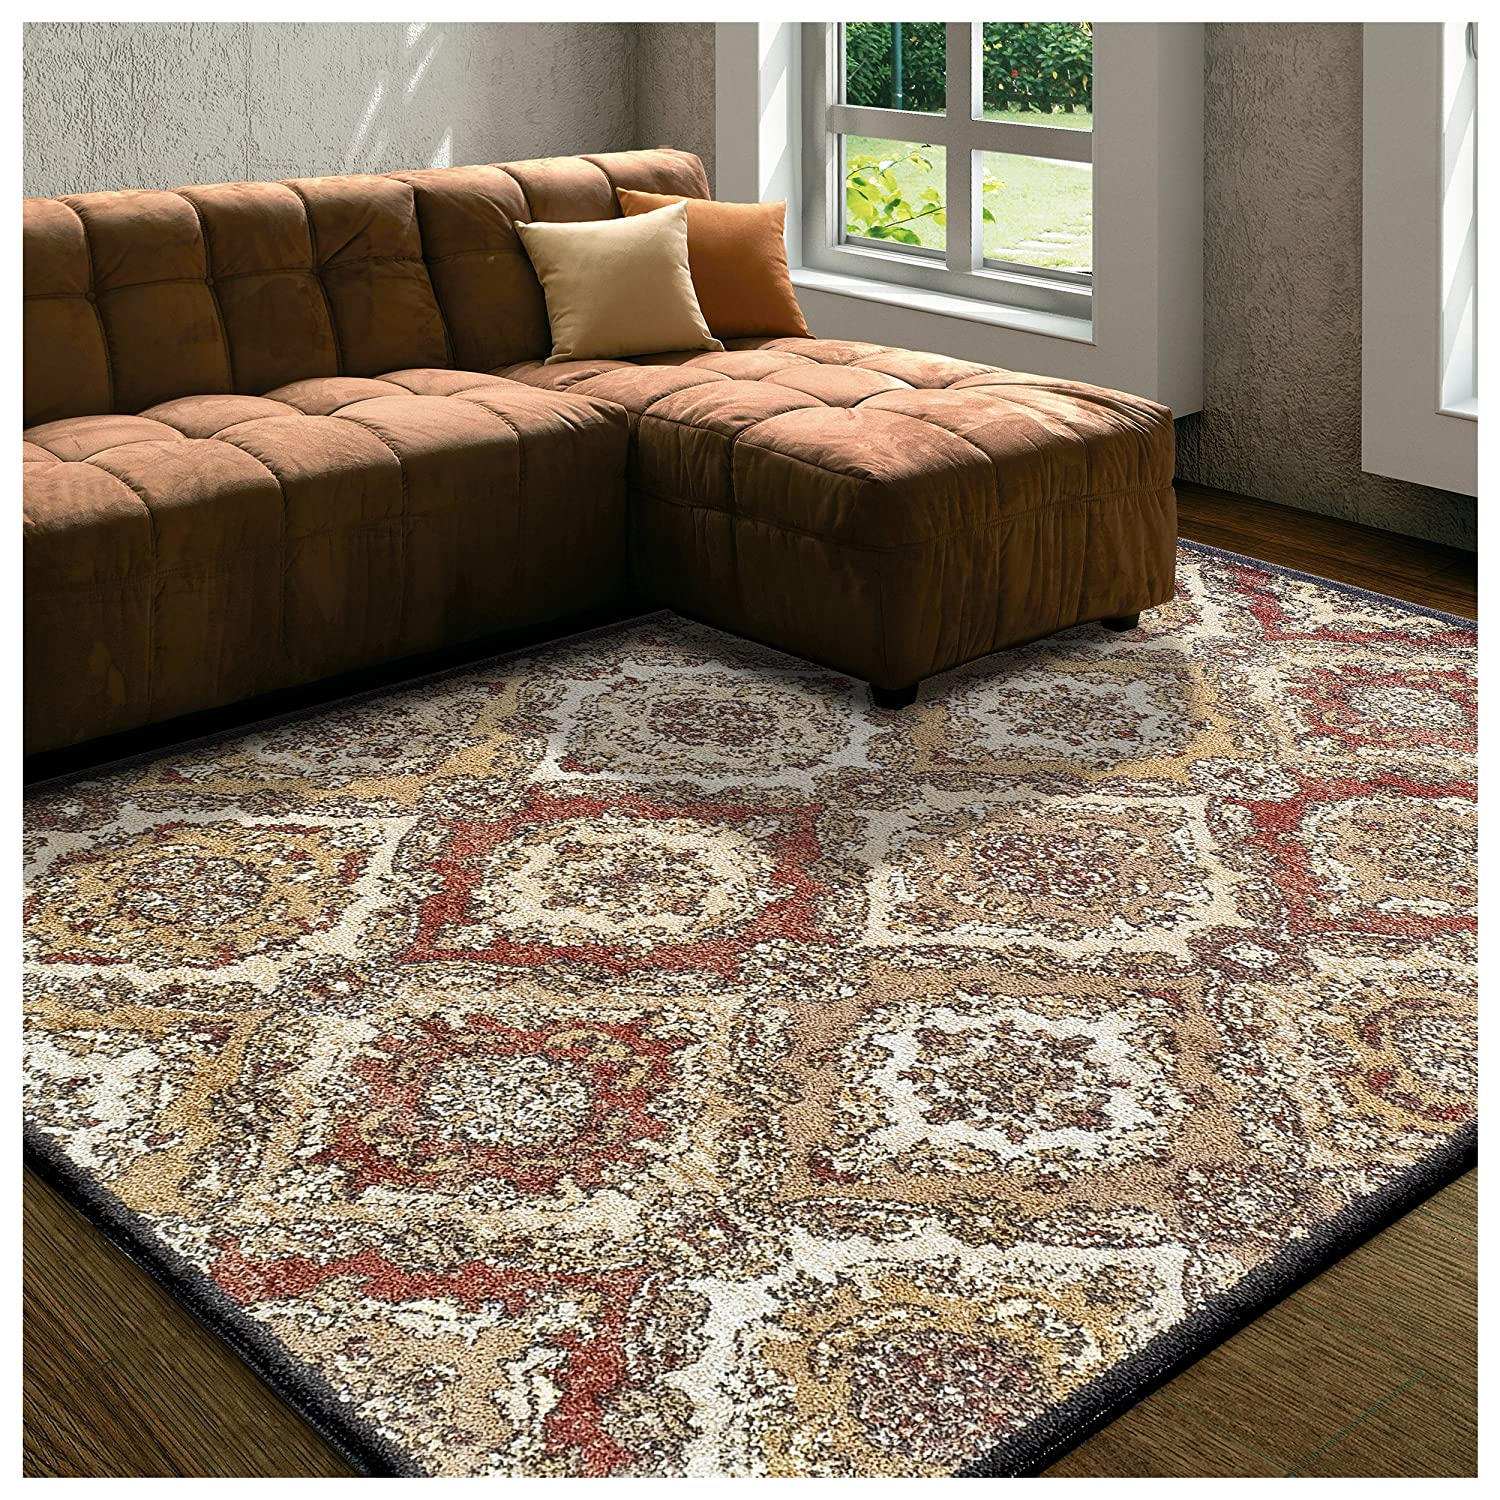 Superior Designer Hayden Area Rug Collection, Intricate Damask Ogee Pattern, 6mm Pile Height with Jute Backing, Affordable and Beautiful Rugs - 2'7 x 8', Black 2.6x8RUG-HAYDEN-BK